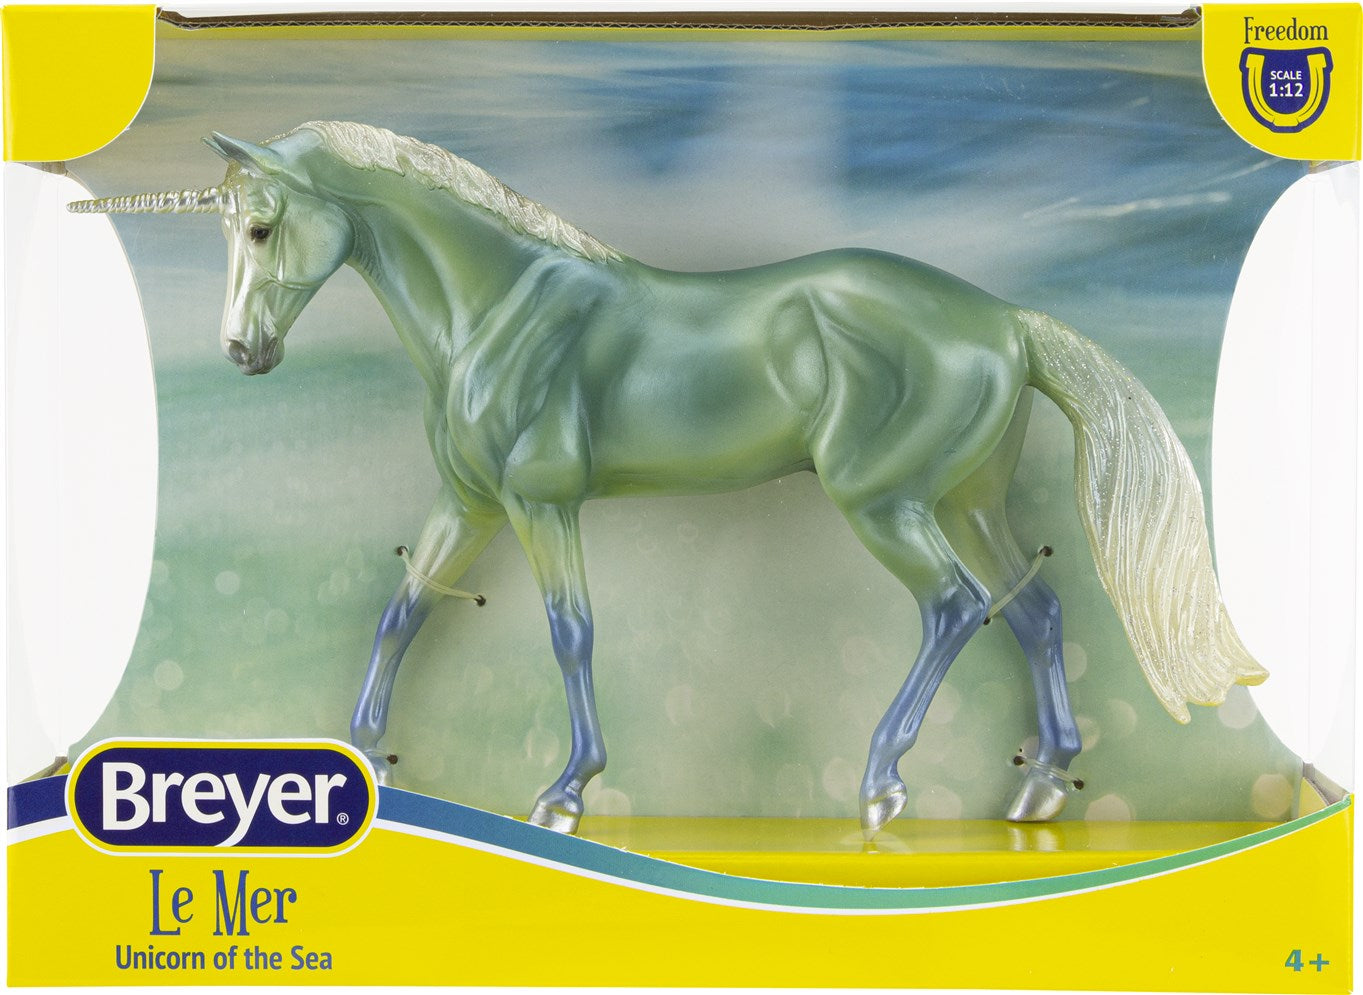 Breyer Freedom Le Mer - Unicorn of the Sea